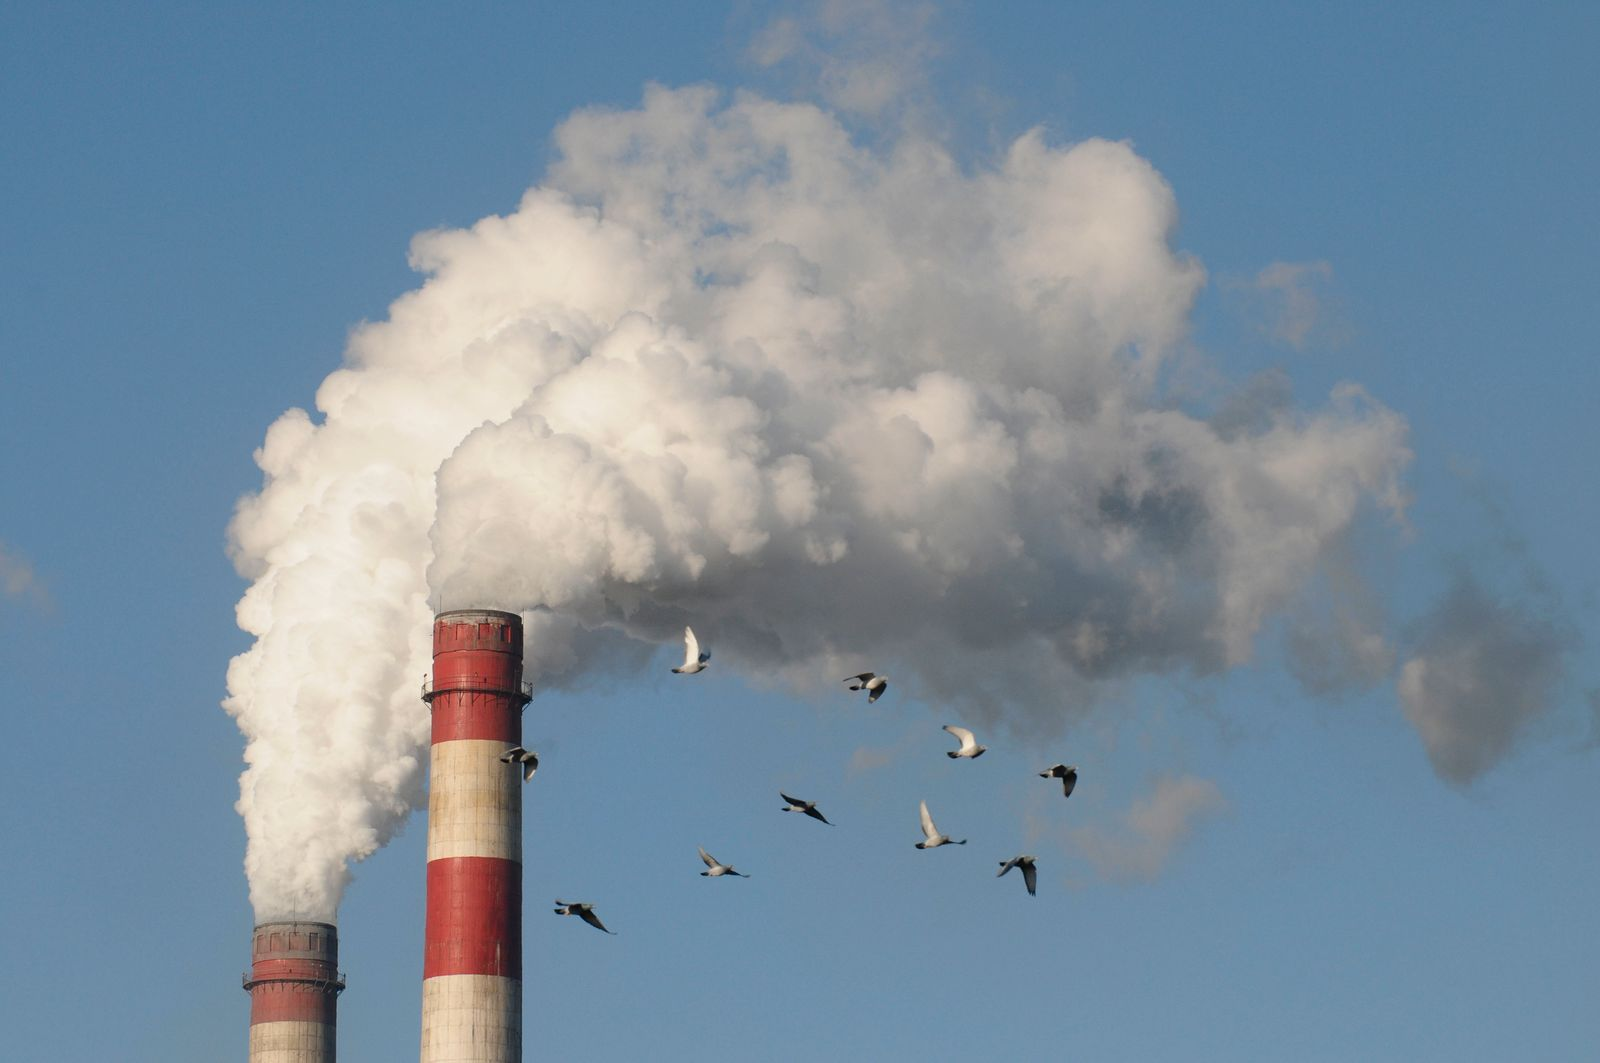 Pigeons fly near spewing stacks of a heat power plant in Changzhi, Shanxi province